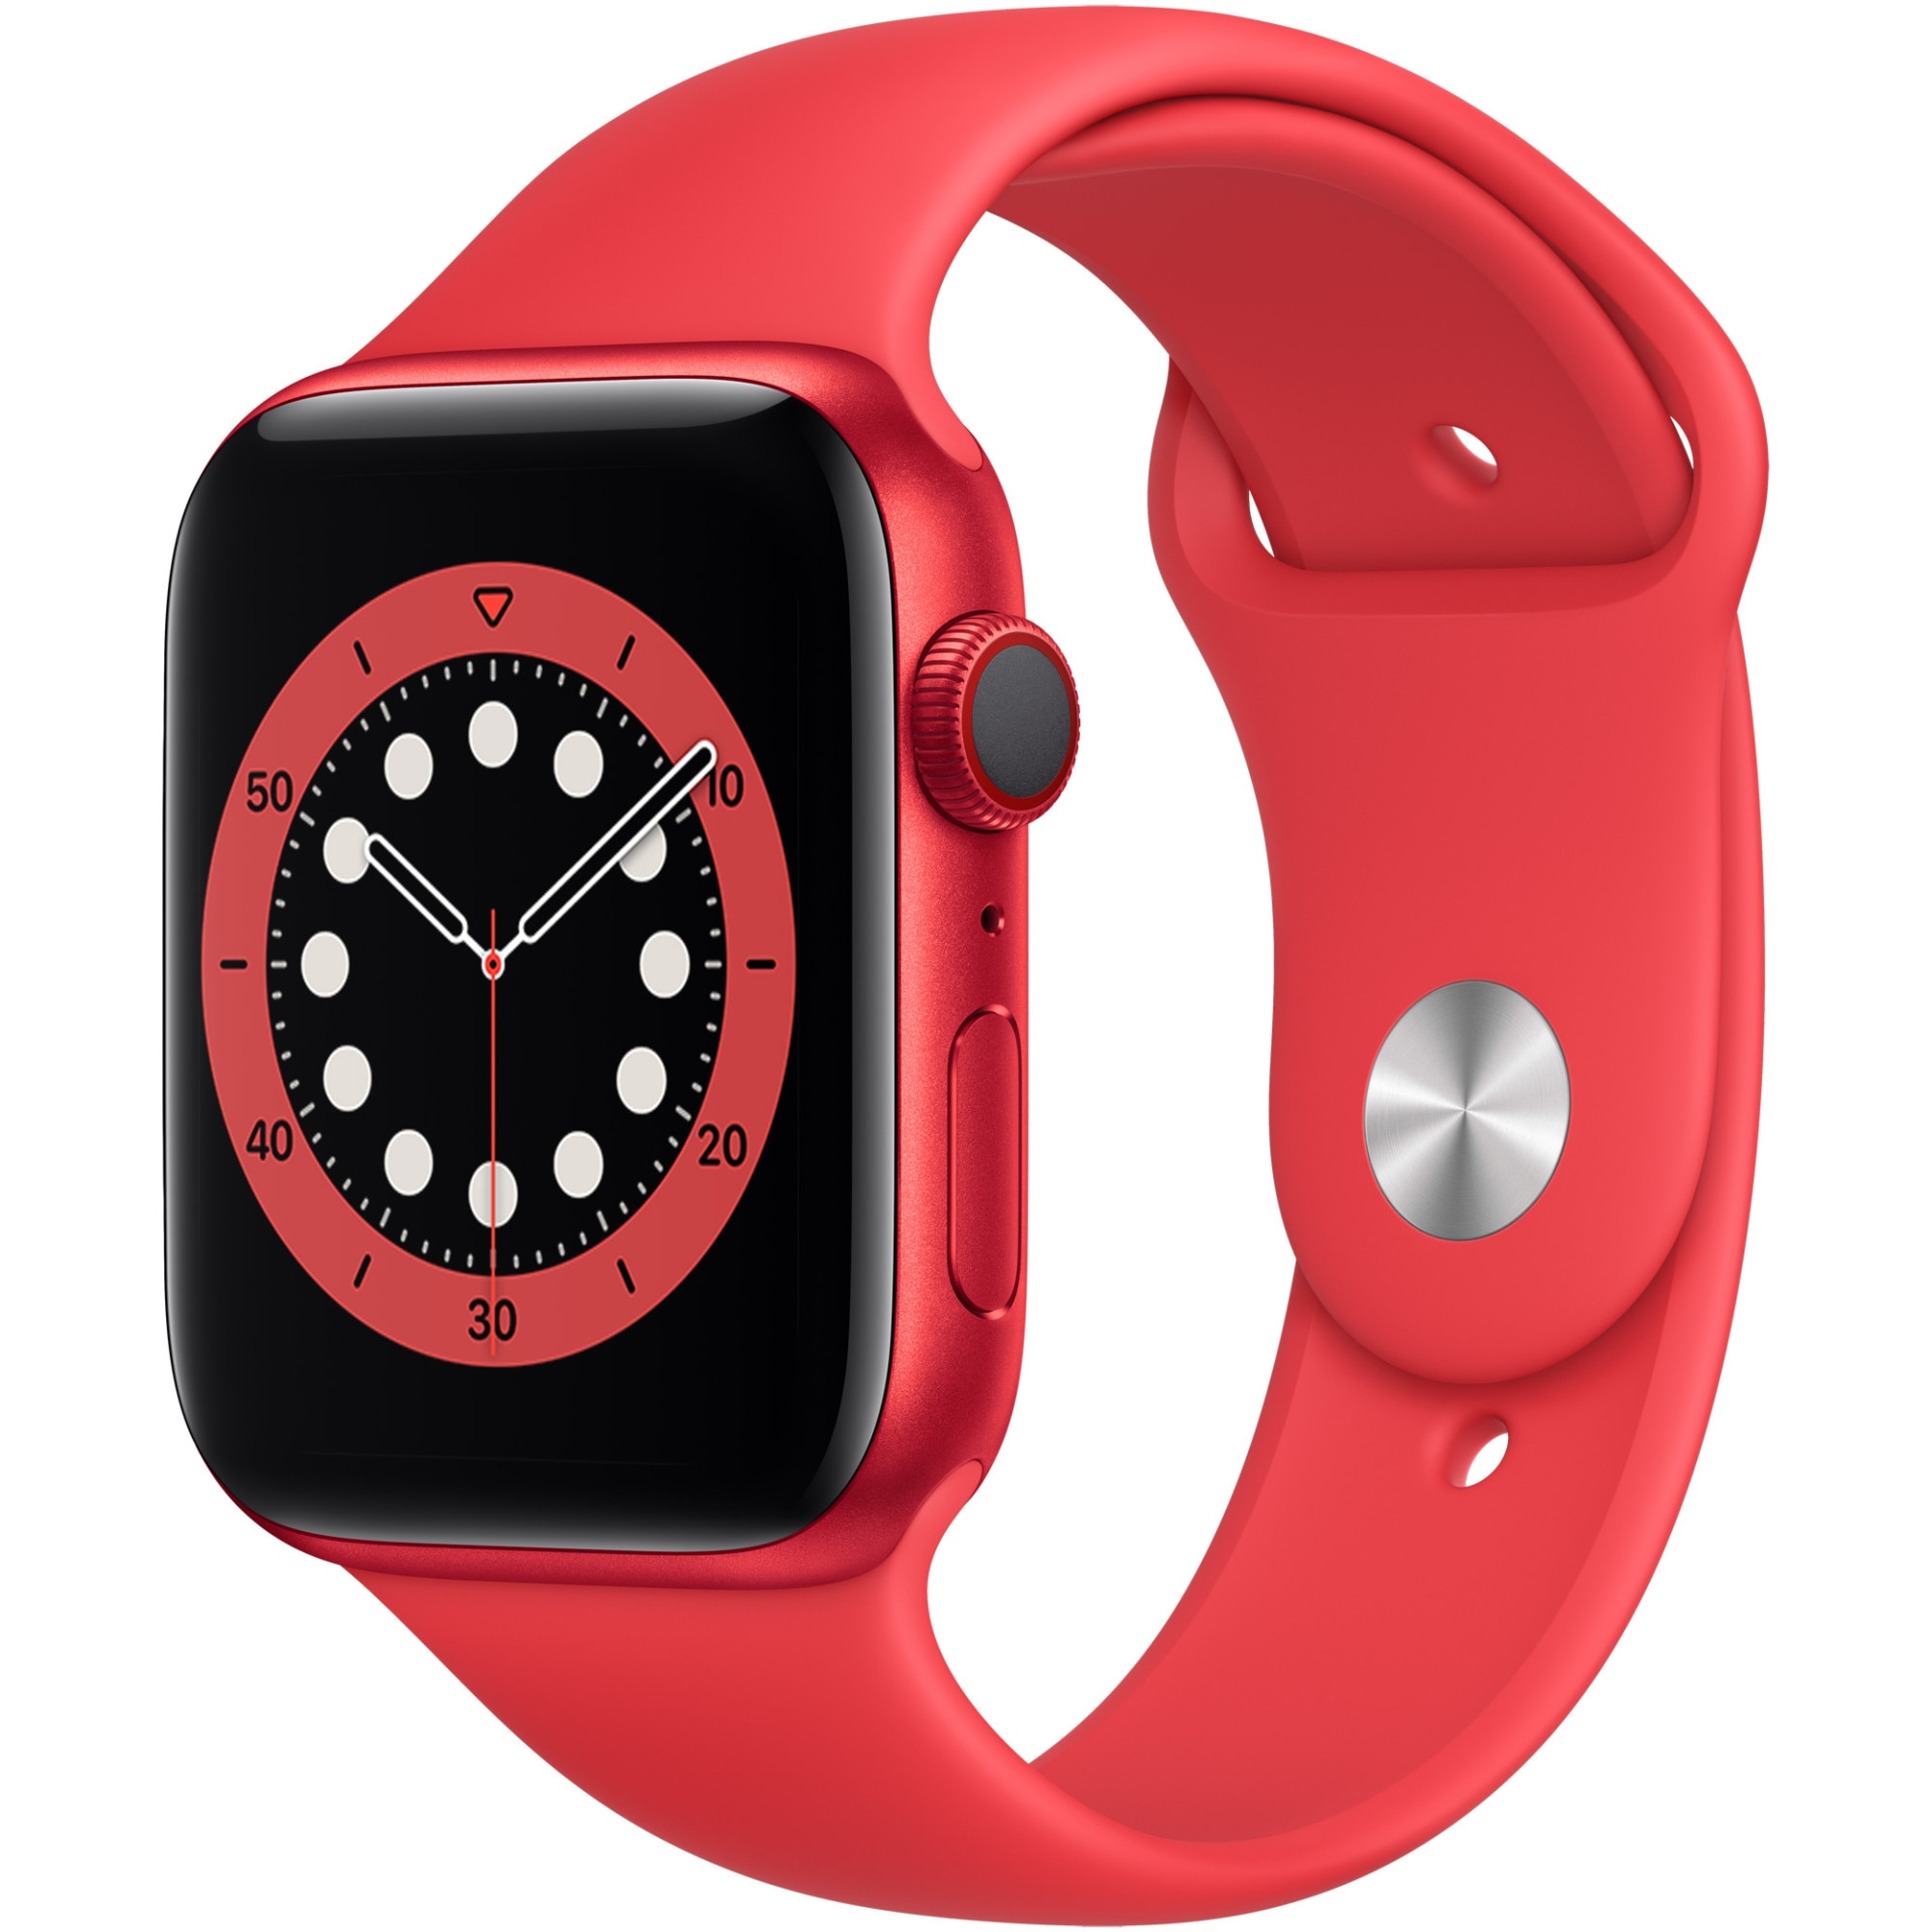 Fotografie Apple Watch 6, GPS, Cellular, Carcasa Red Aluminium 44mm, Red Sport Band